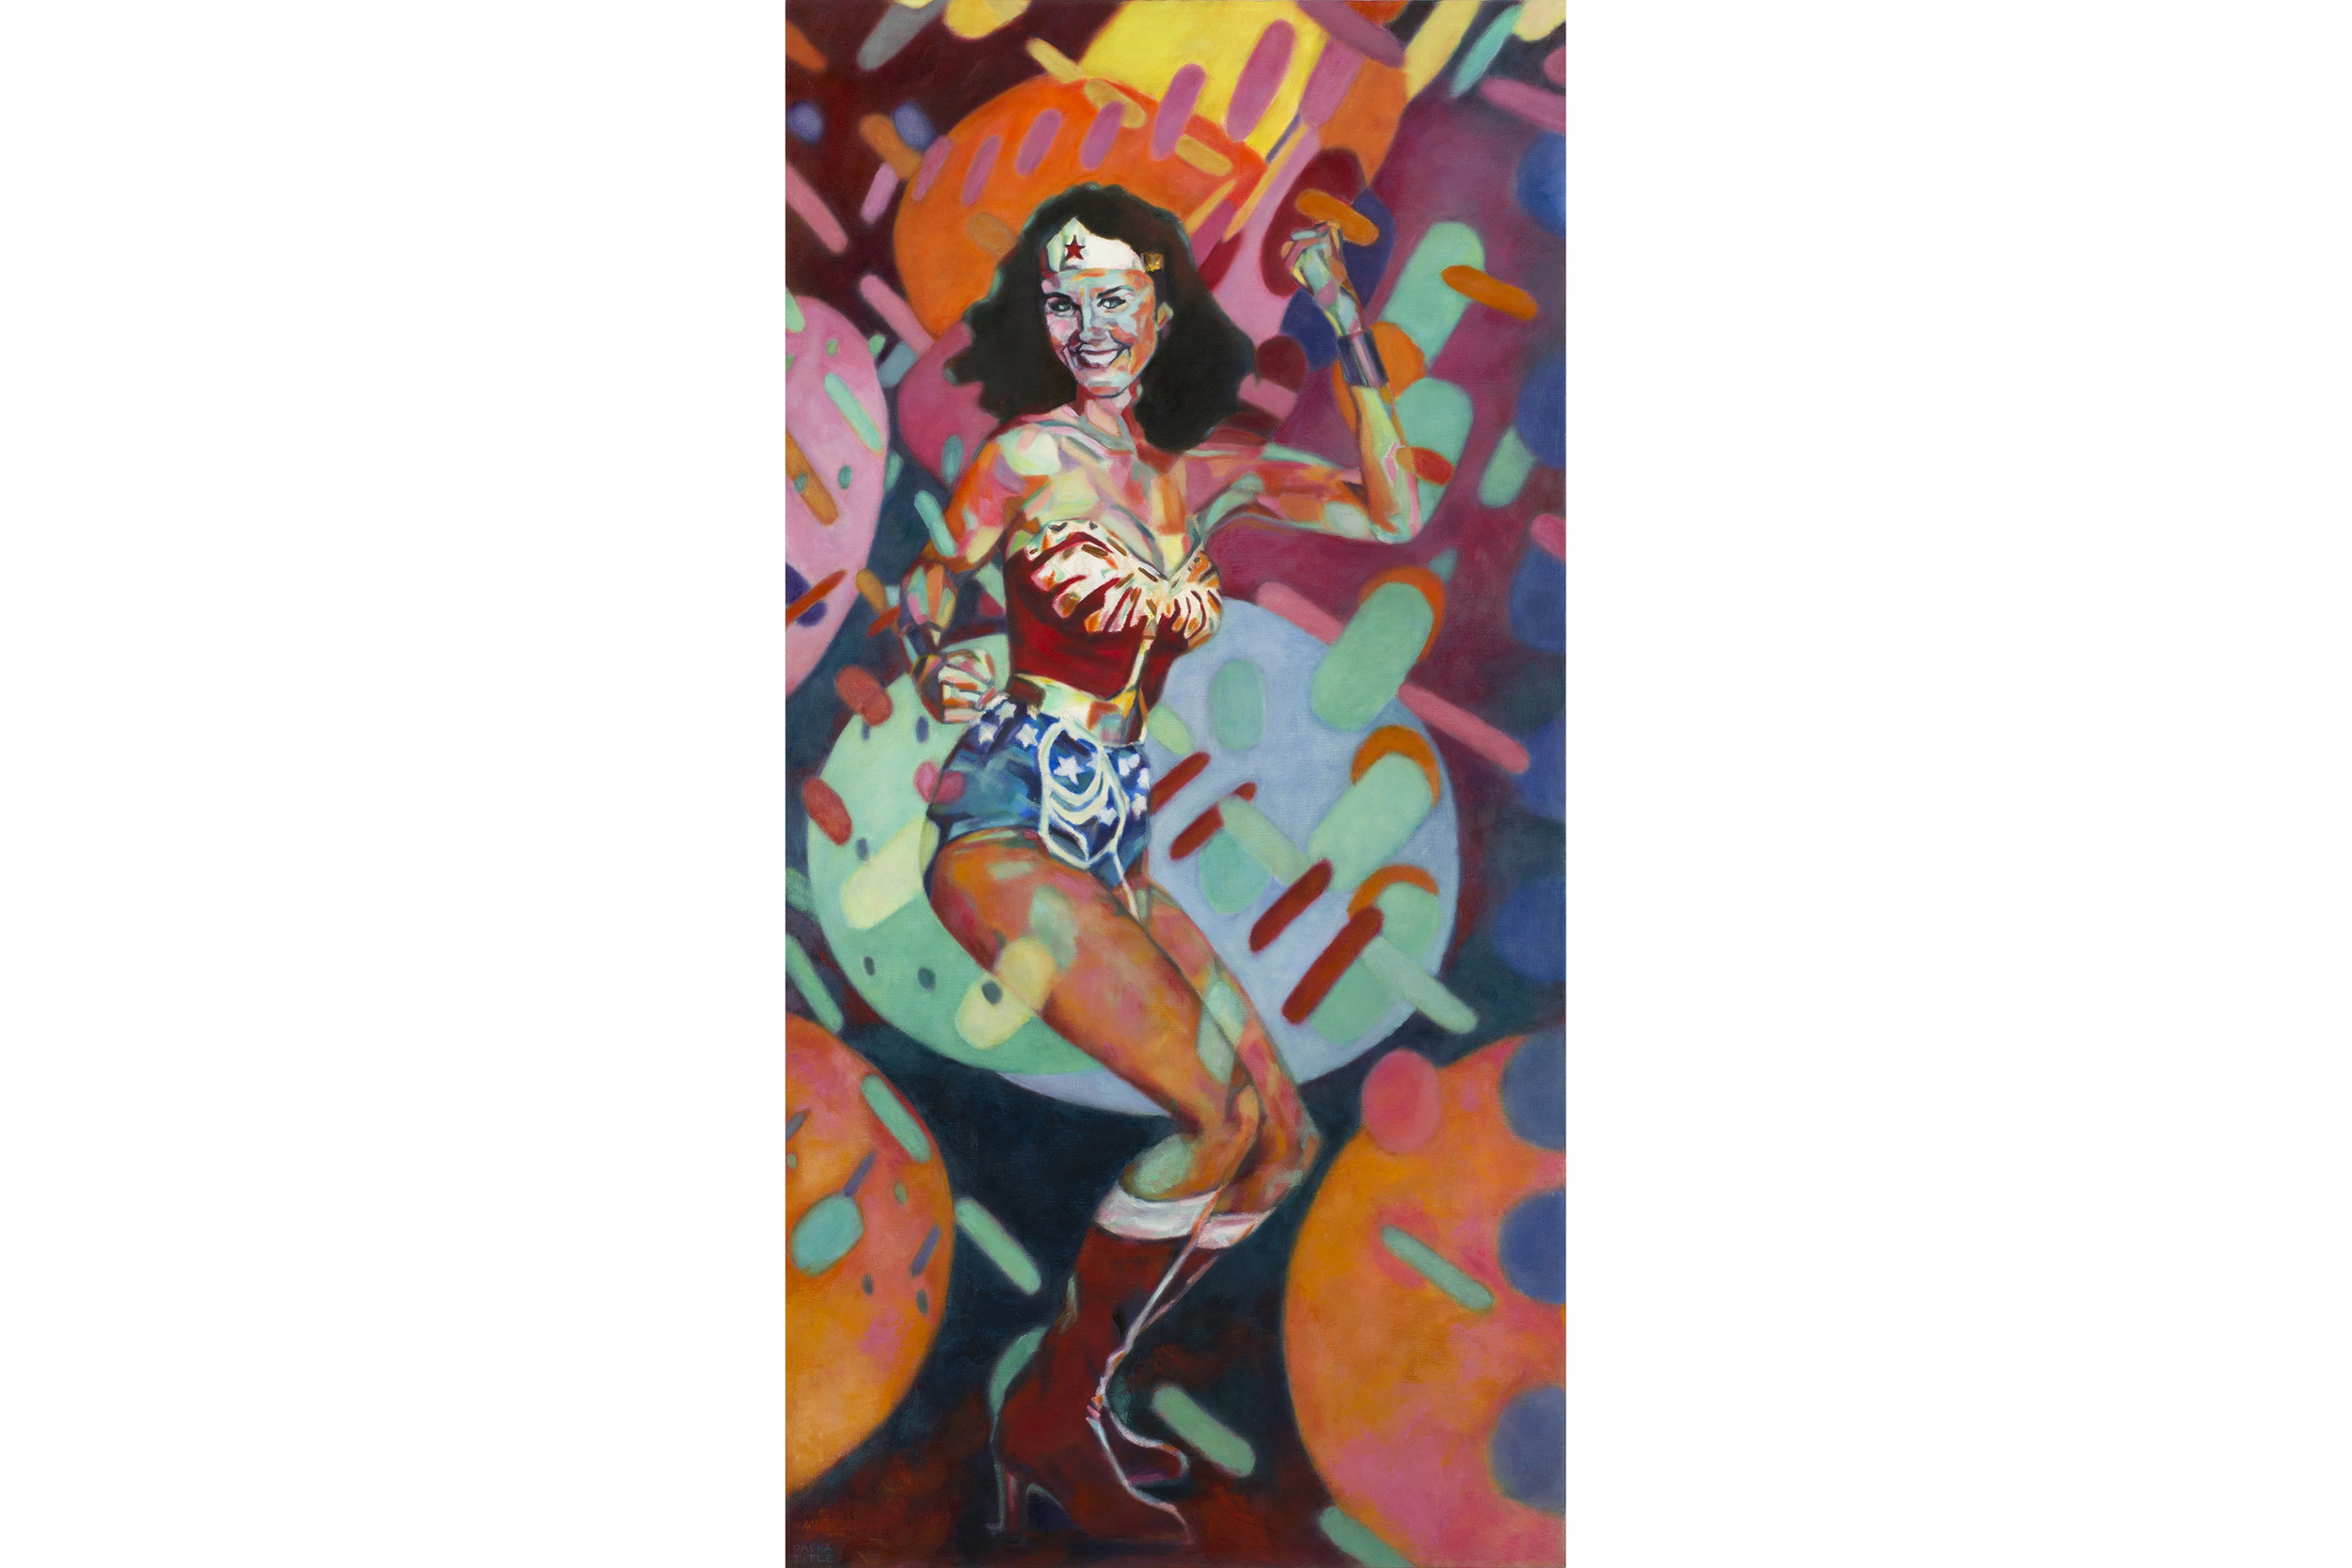 "Daena Title Wonder Woman at the Disco Oil, acrylic, pastels on canvas 48"" x 24"", 2016"